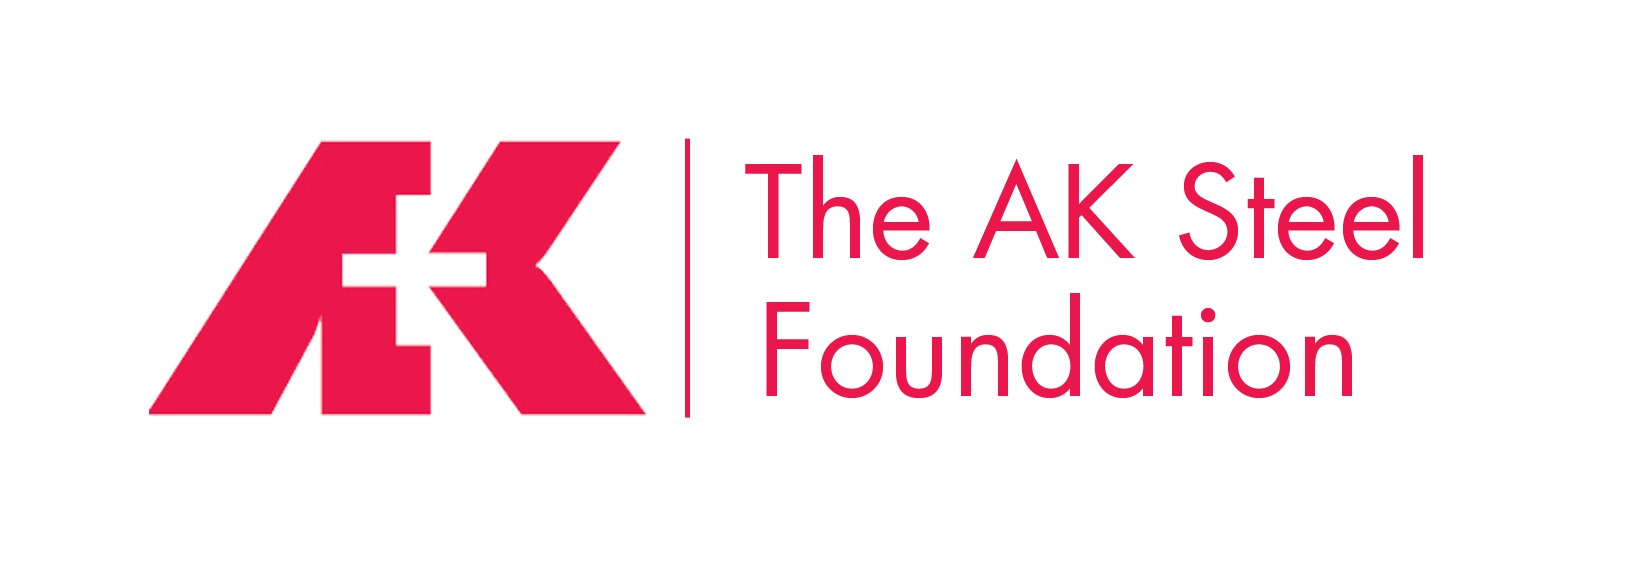 AK Steel Foundation